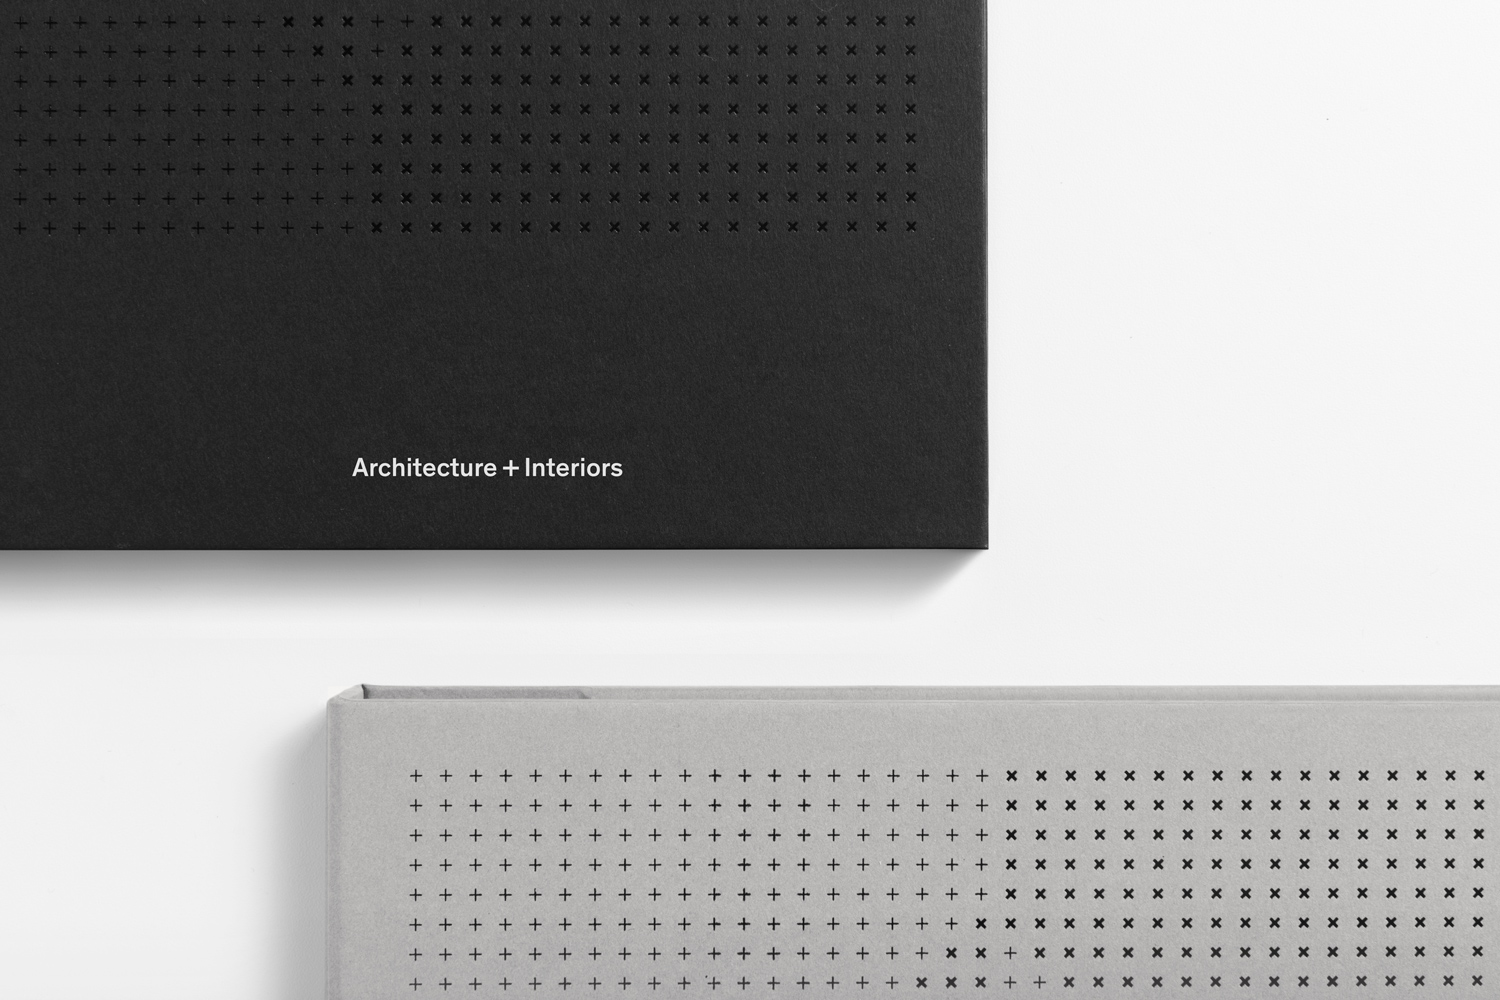 Print finish detail of Studio South's brand identity work for Auckland-based architecture and interior business Verso